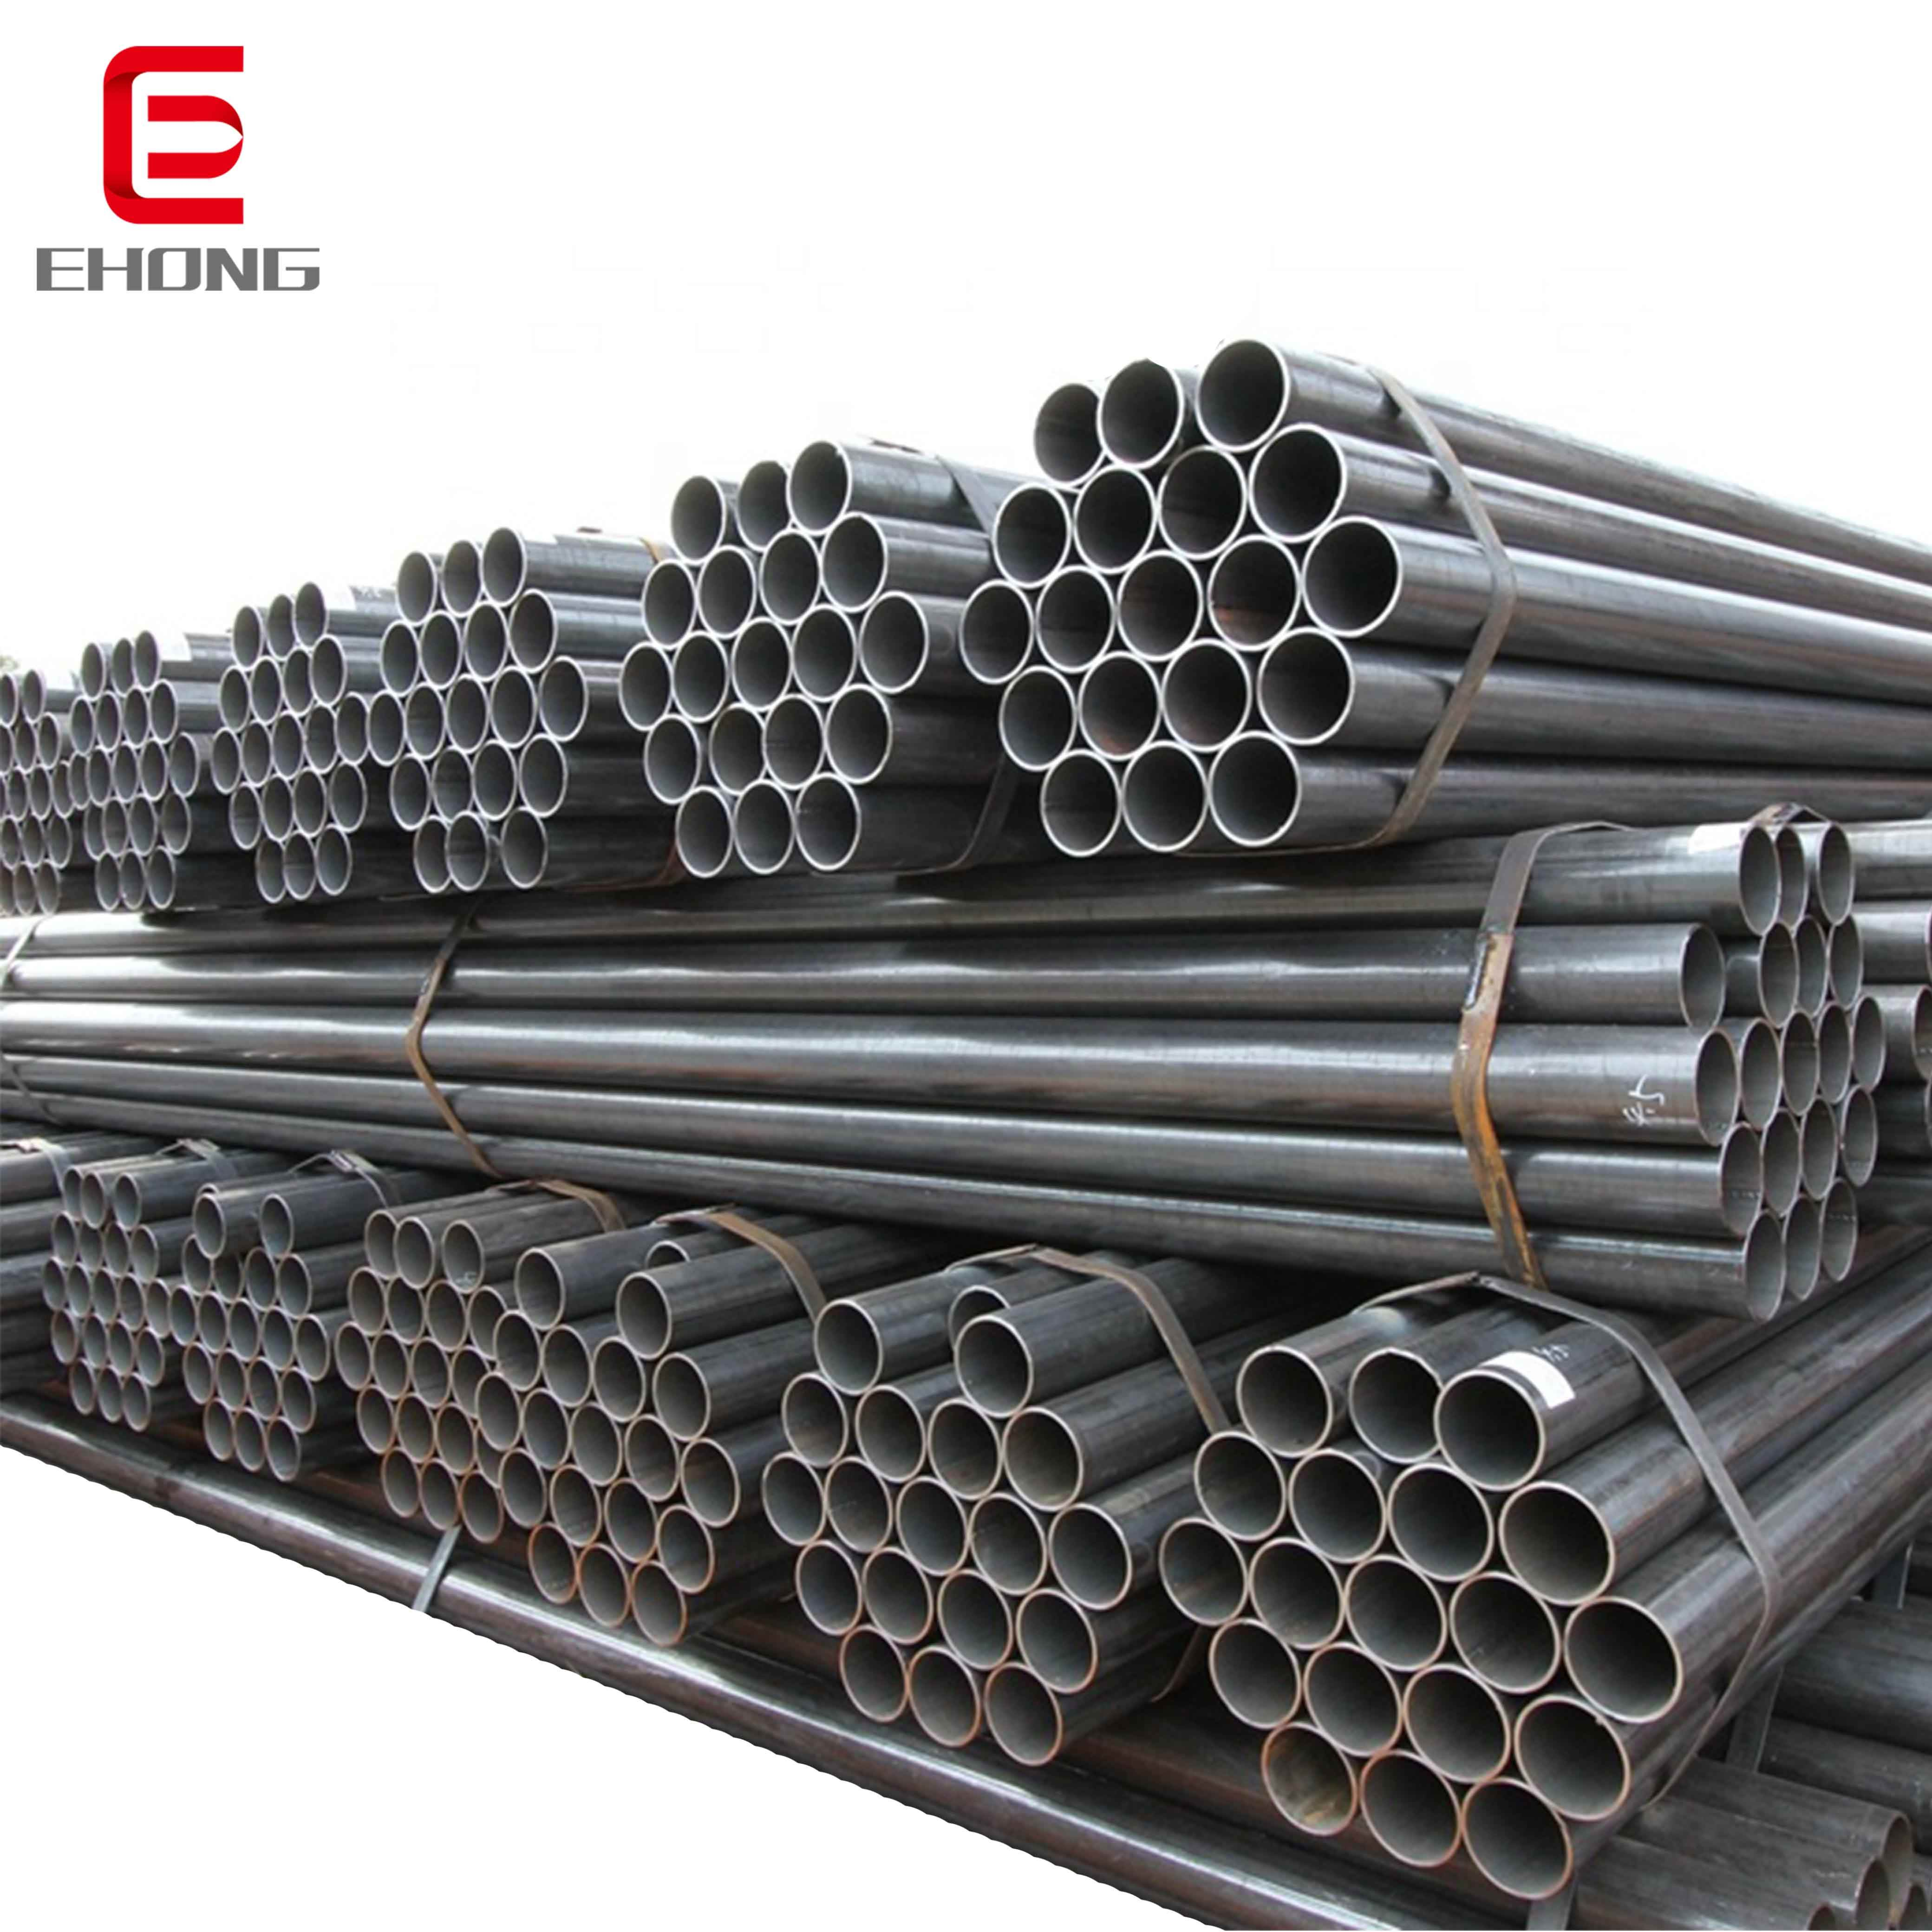 large small diameter round steel tube pipe manufacturer ! 6 inch 165mm dn150 iron erw weld steel pipe price per meter